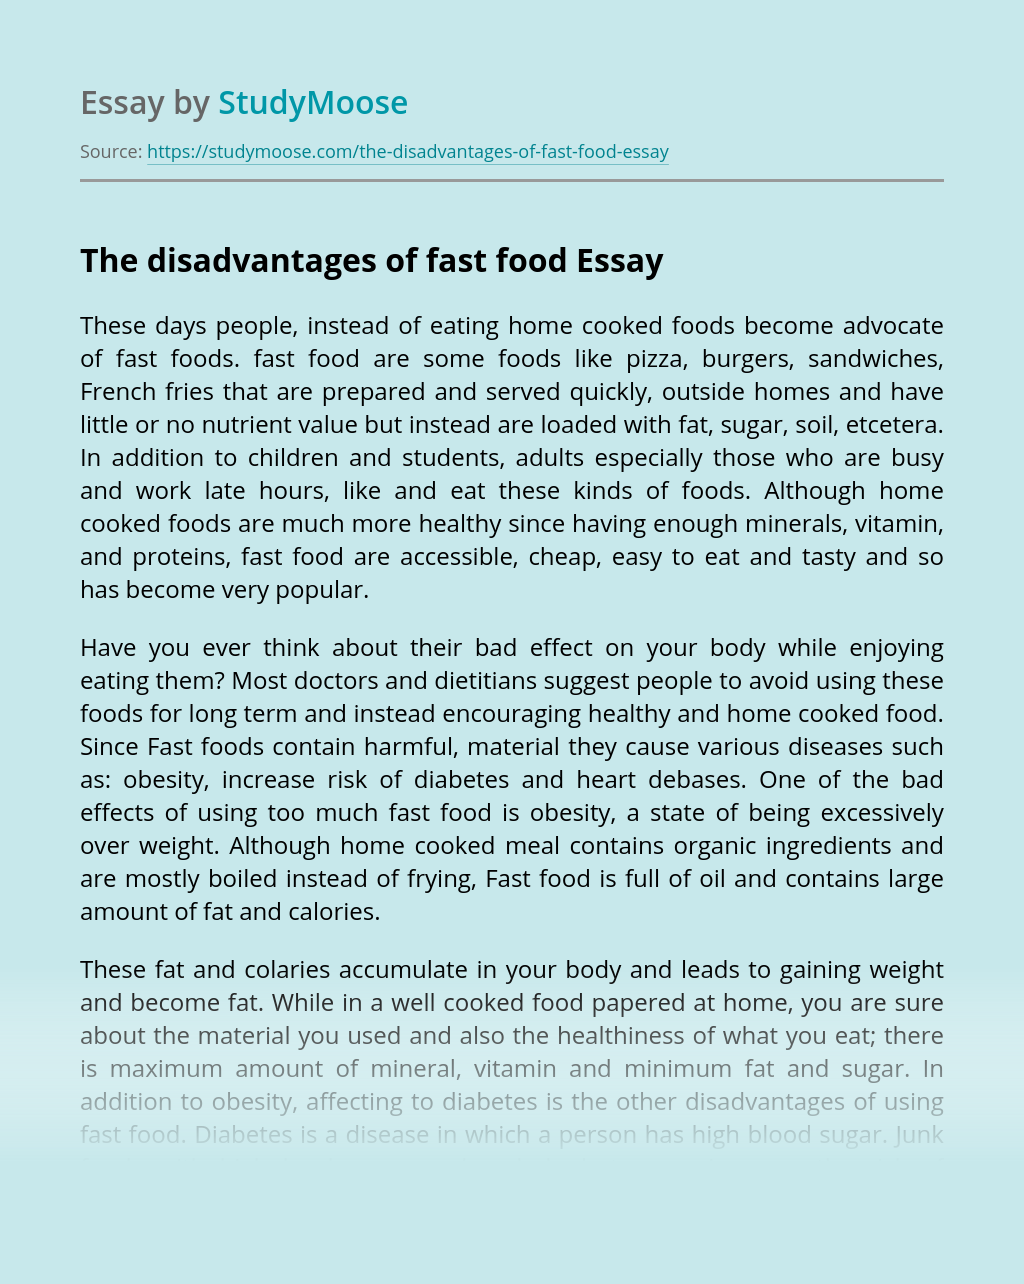 The disadvantages of fast food